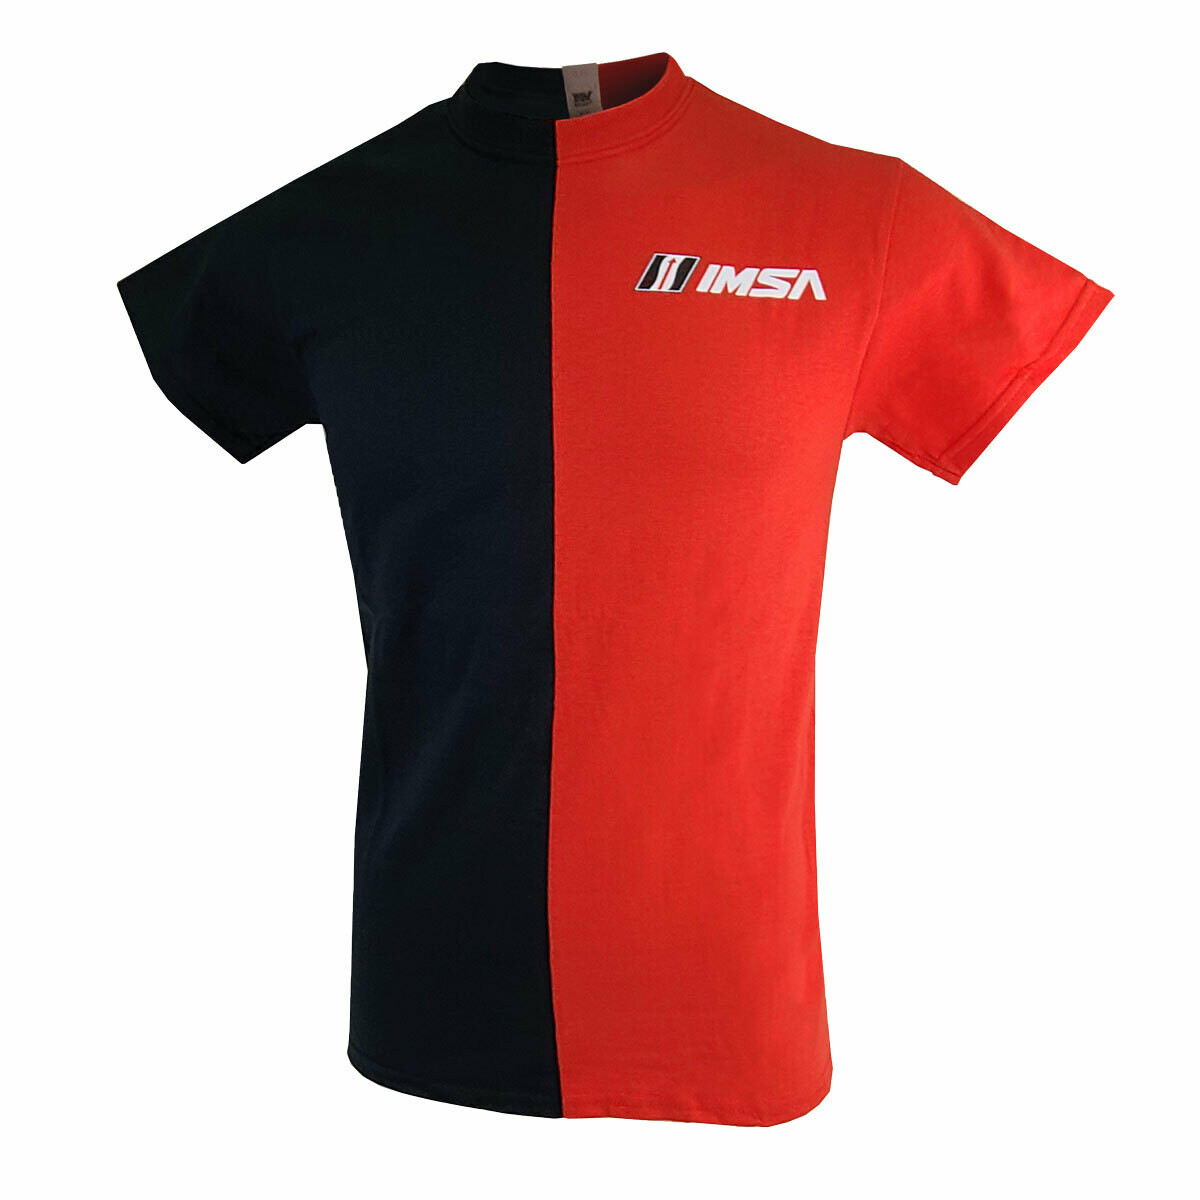 IMSA Split Tee- Black/Red